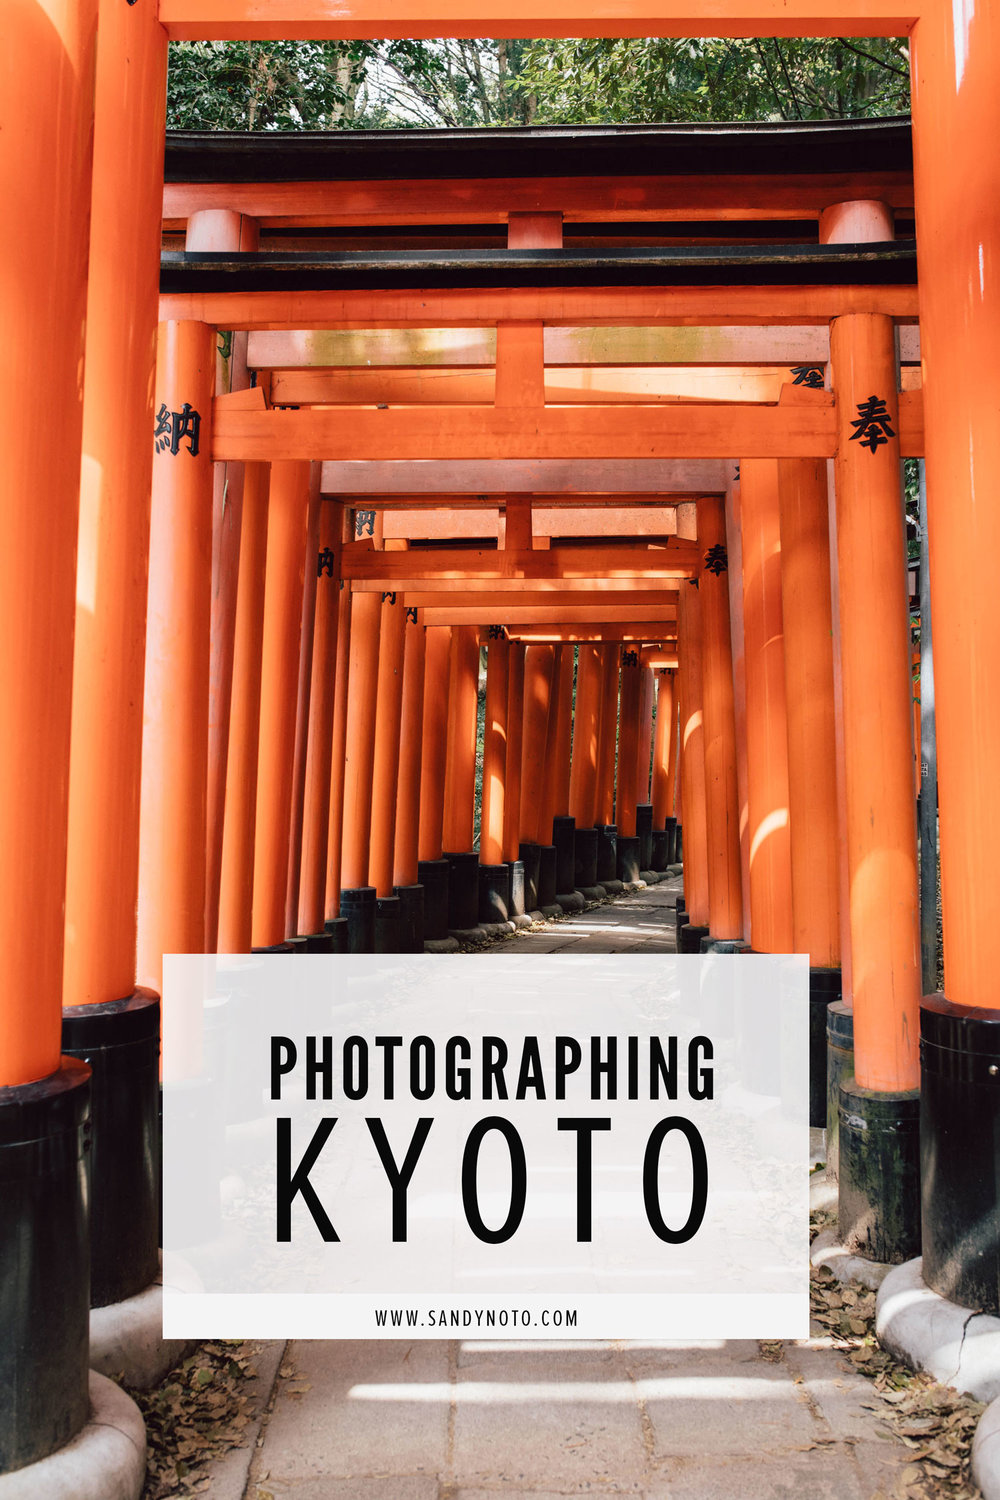 Photographing Kyoto